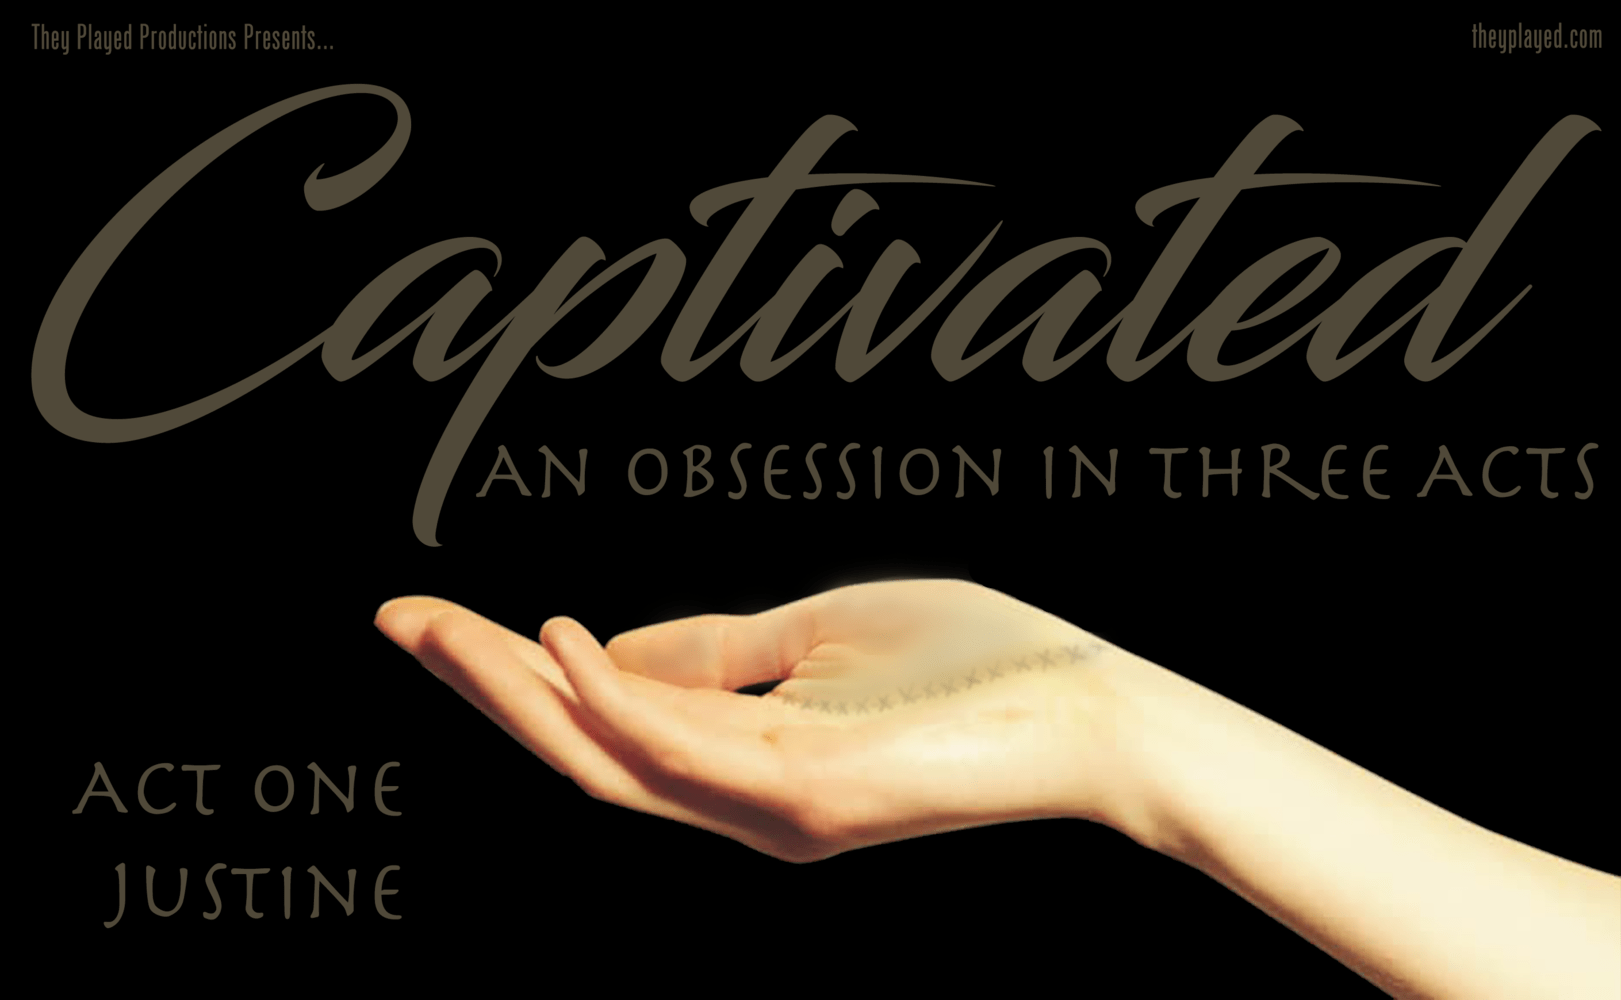 Captivated Logo Image